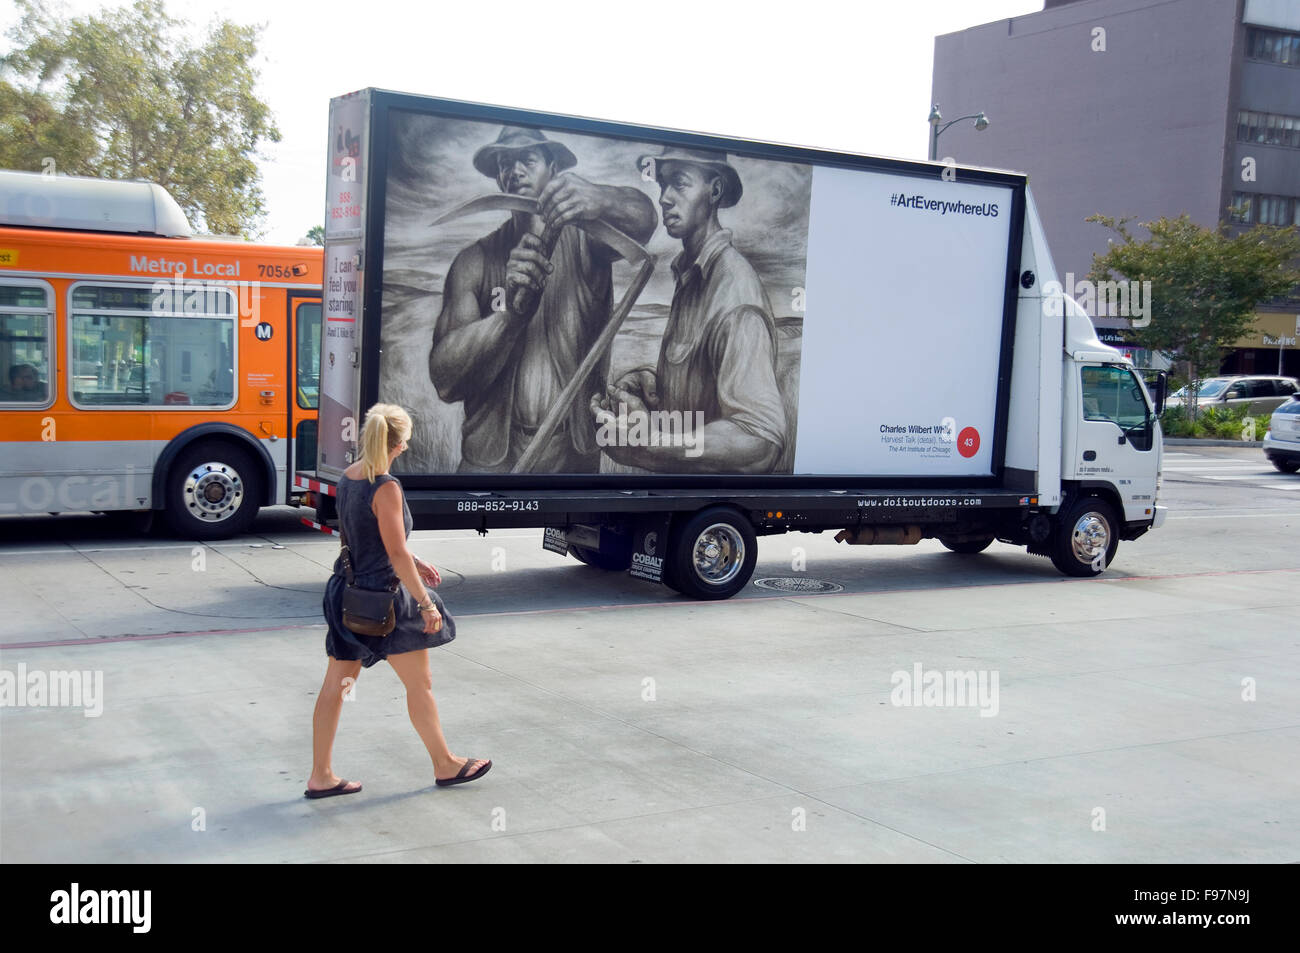 A Charles Wllbert White Painting Appears On Mobile Billboard Driving Along Wilshire Blvd Near The Los Angeles County Museum Of Art During